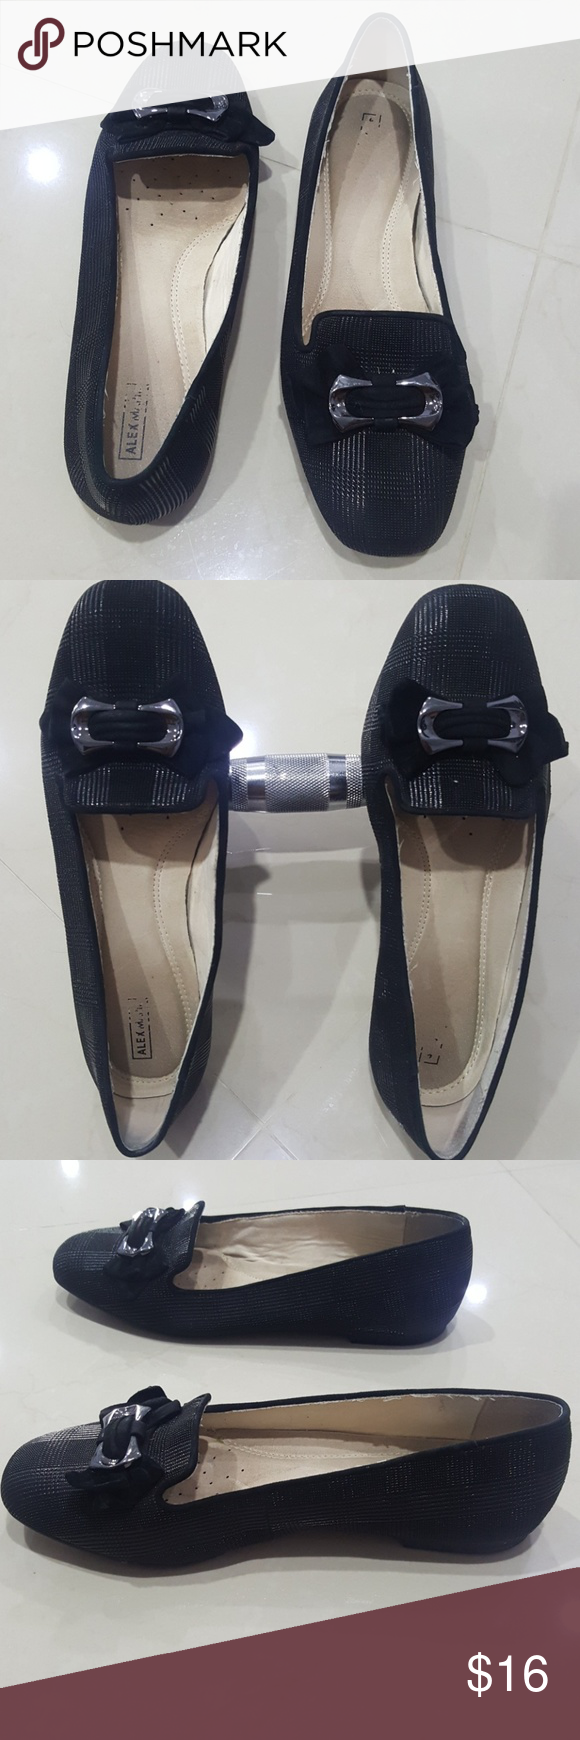 59dc4a80b3b Alex Marie flats Very good condition of this black flats Alex Marie. Size  8. True to size. Alex Marie Shoes Flats   Loafers